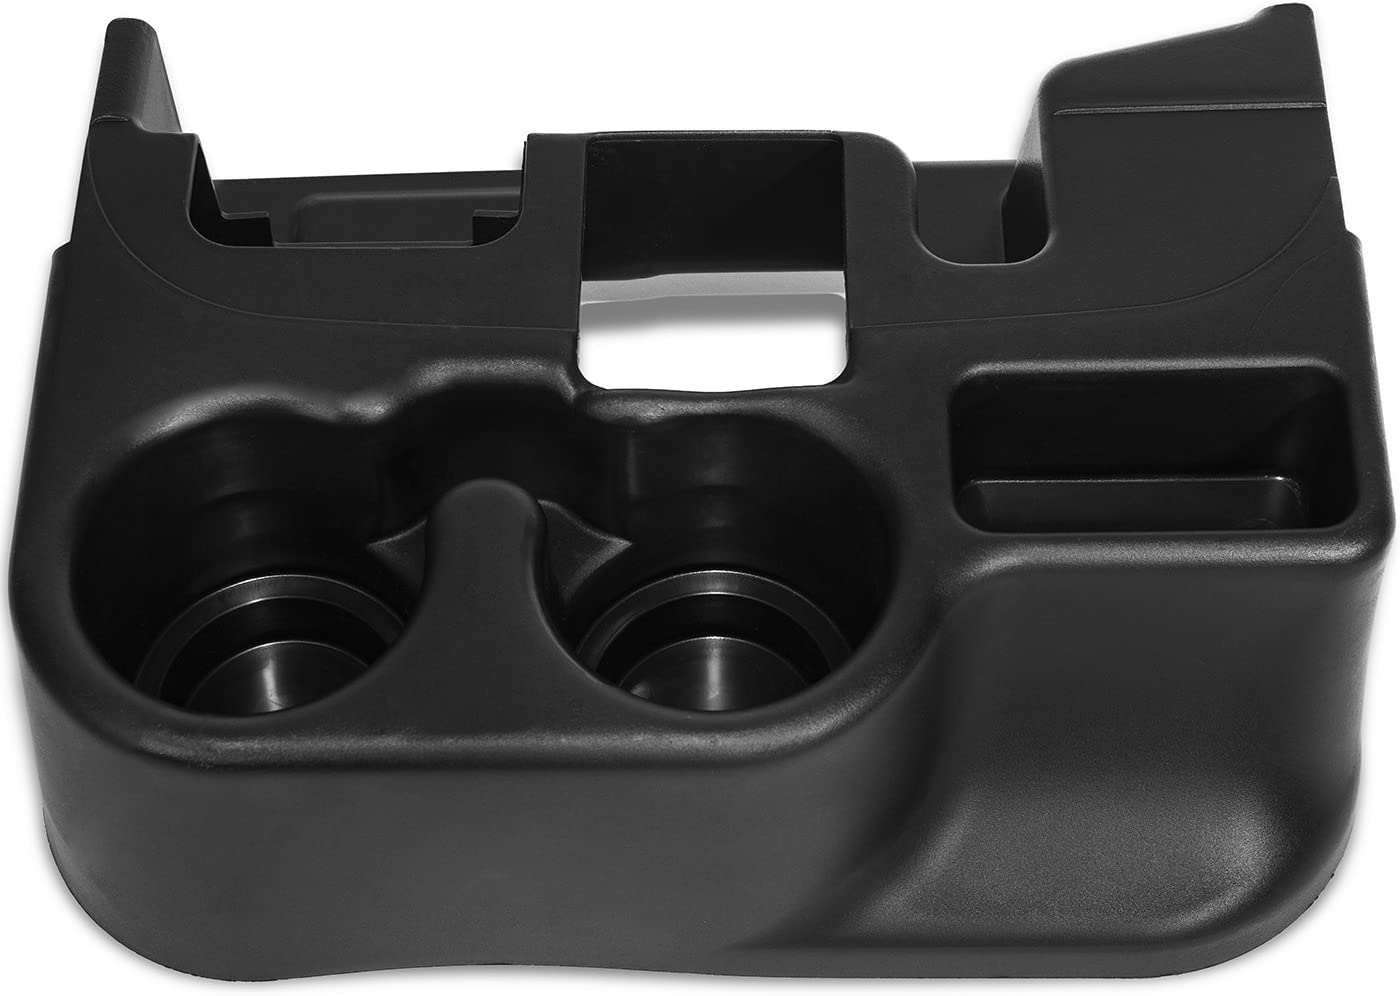 OxGord Center Console Cup Holder Attachment for 2003-2012 Dodge Ram 1500 2500 3500 Vehicles - Black